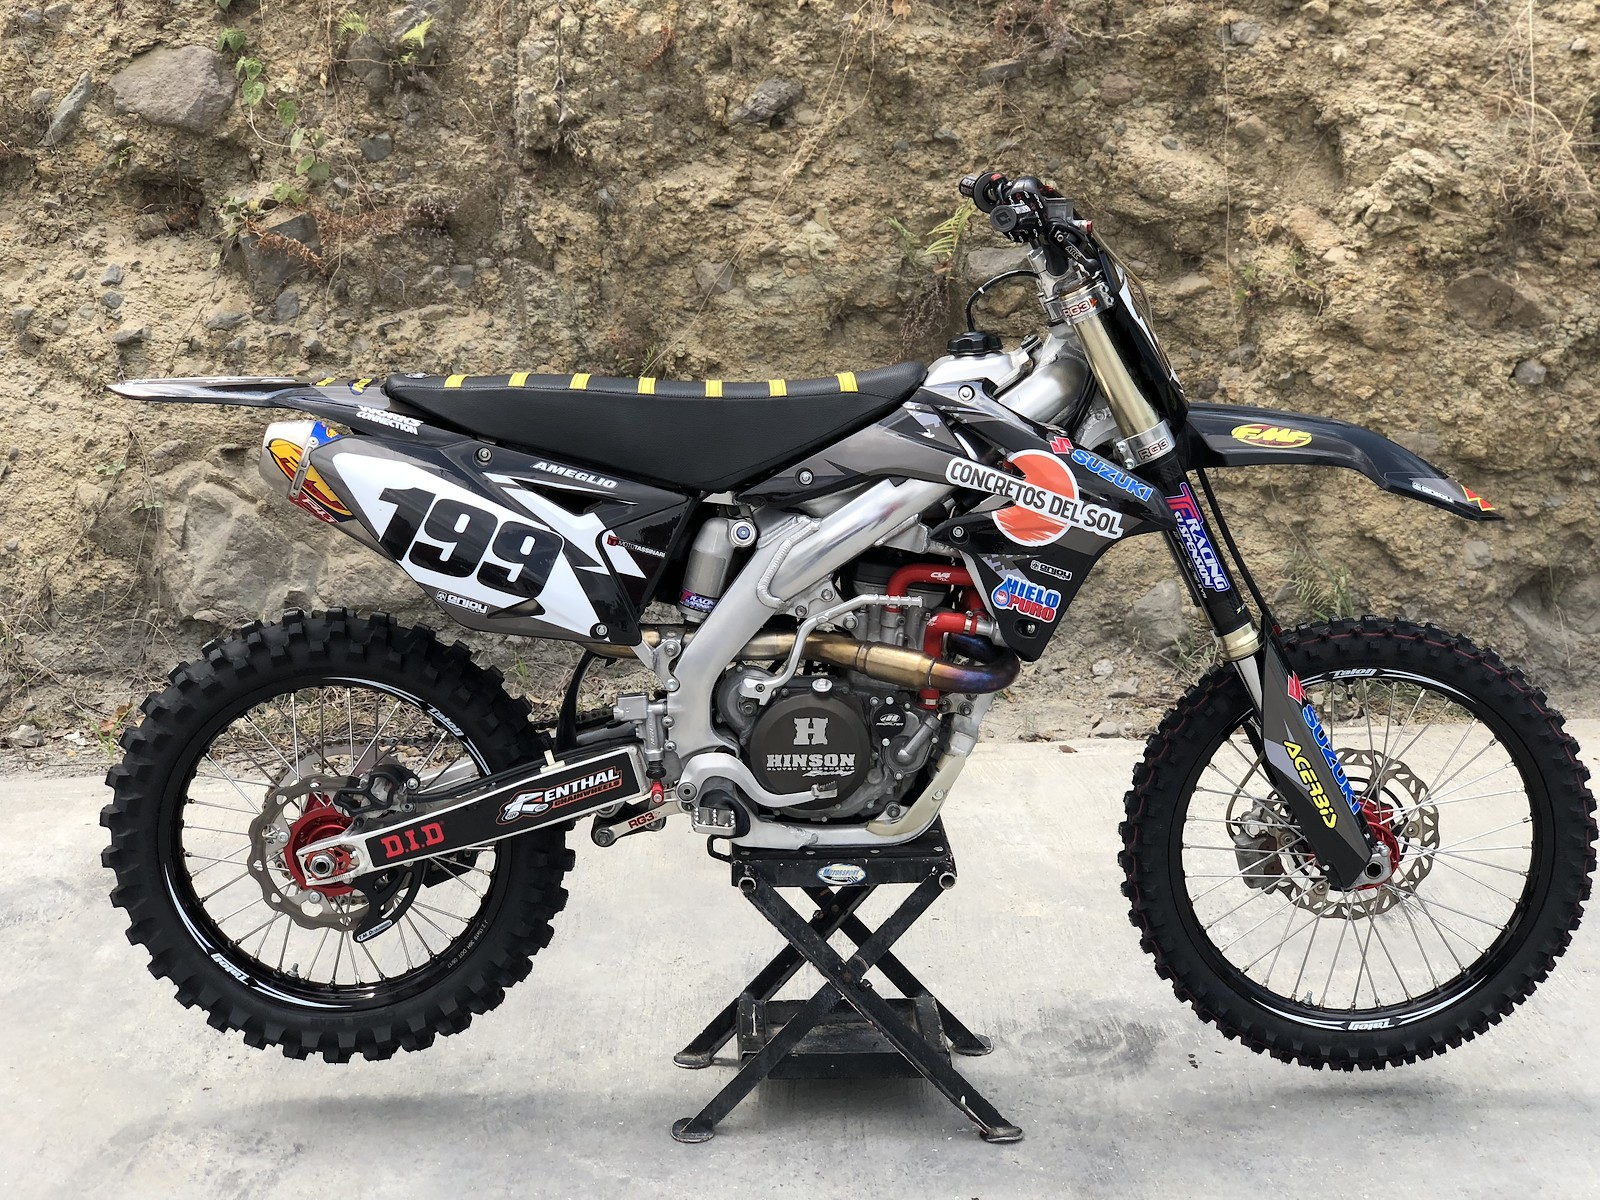 Blacked Out RMZ 450